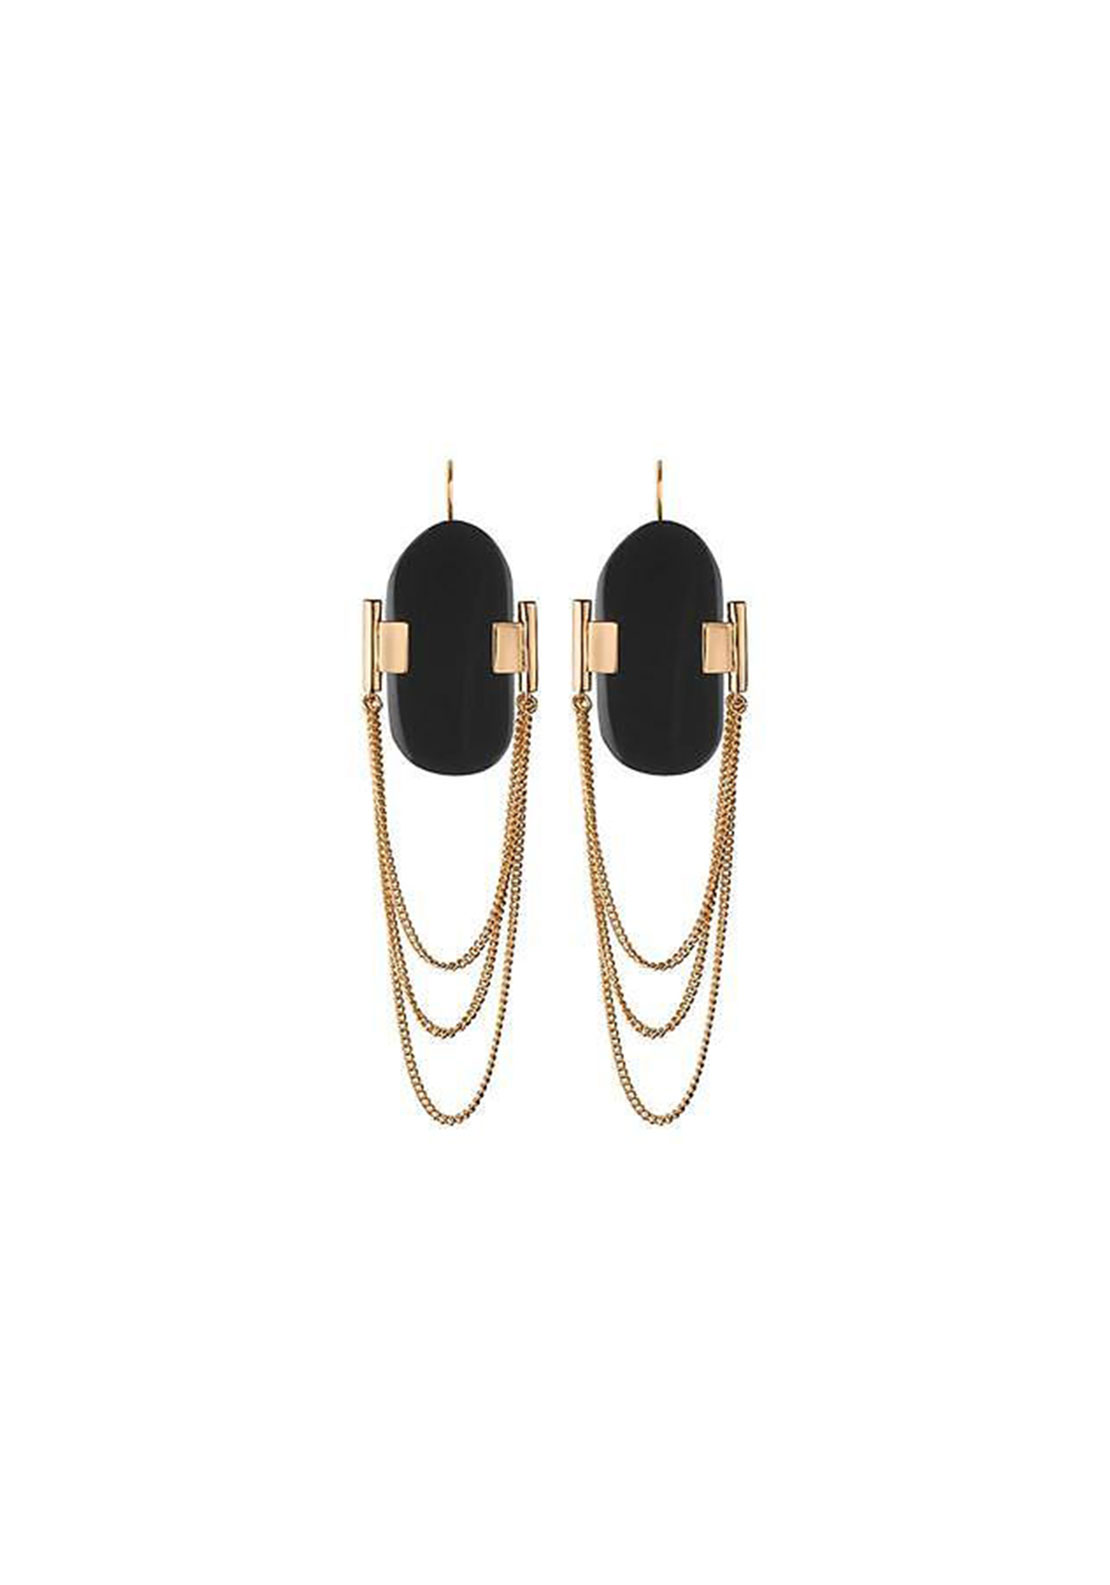 Dyrberg Kern Genaro Earrings, Black & Gold